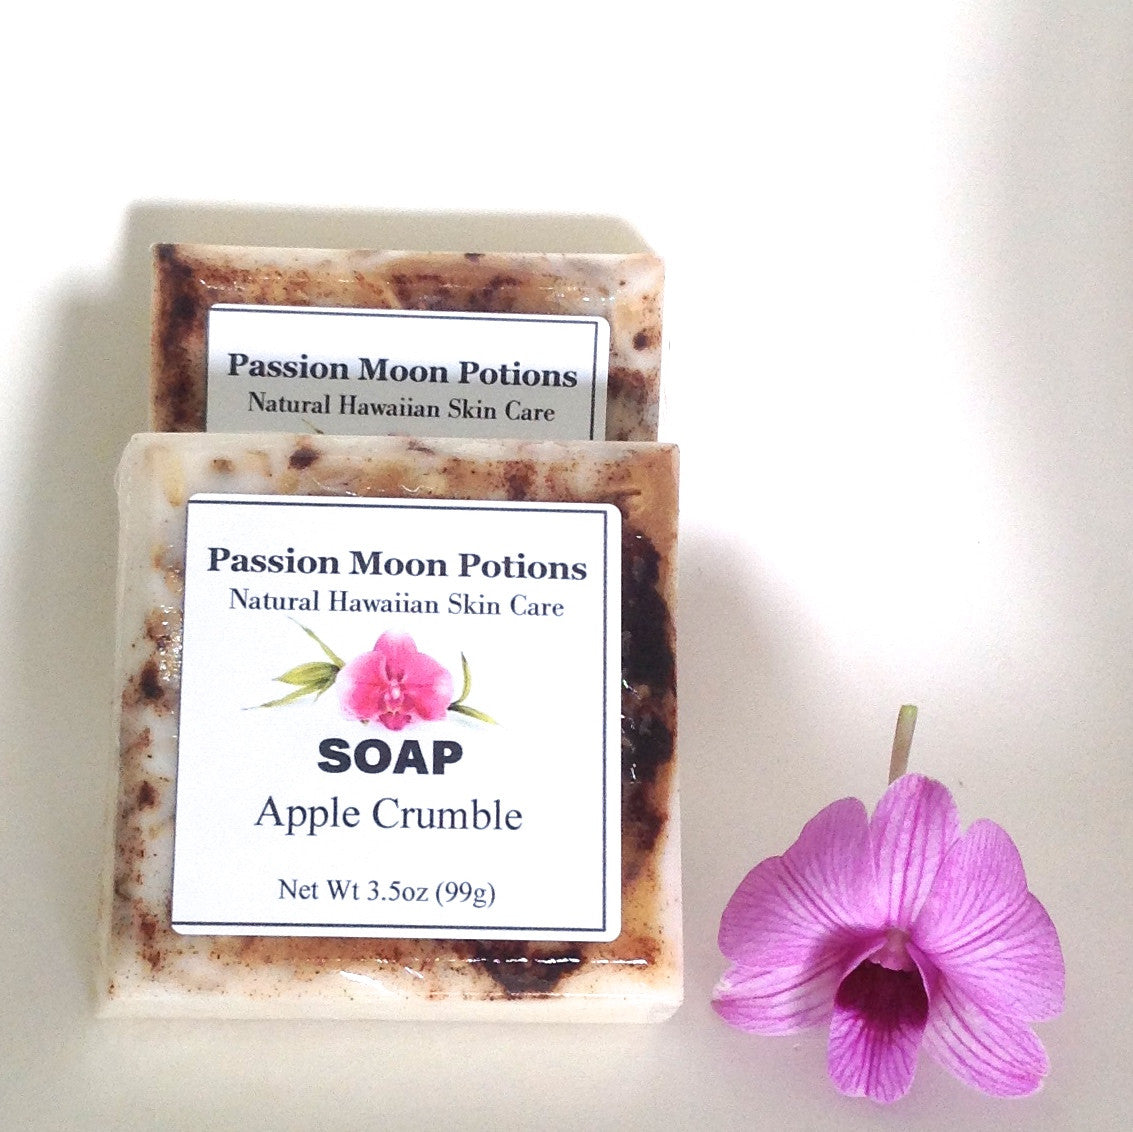 Apple Crumble Soap - Passion Moon Potions - 3